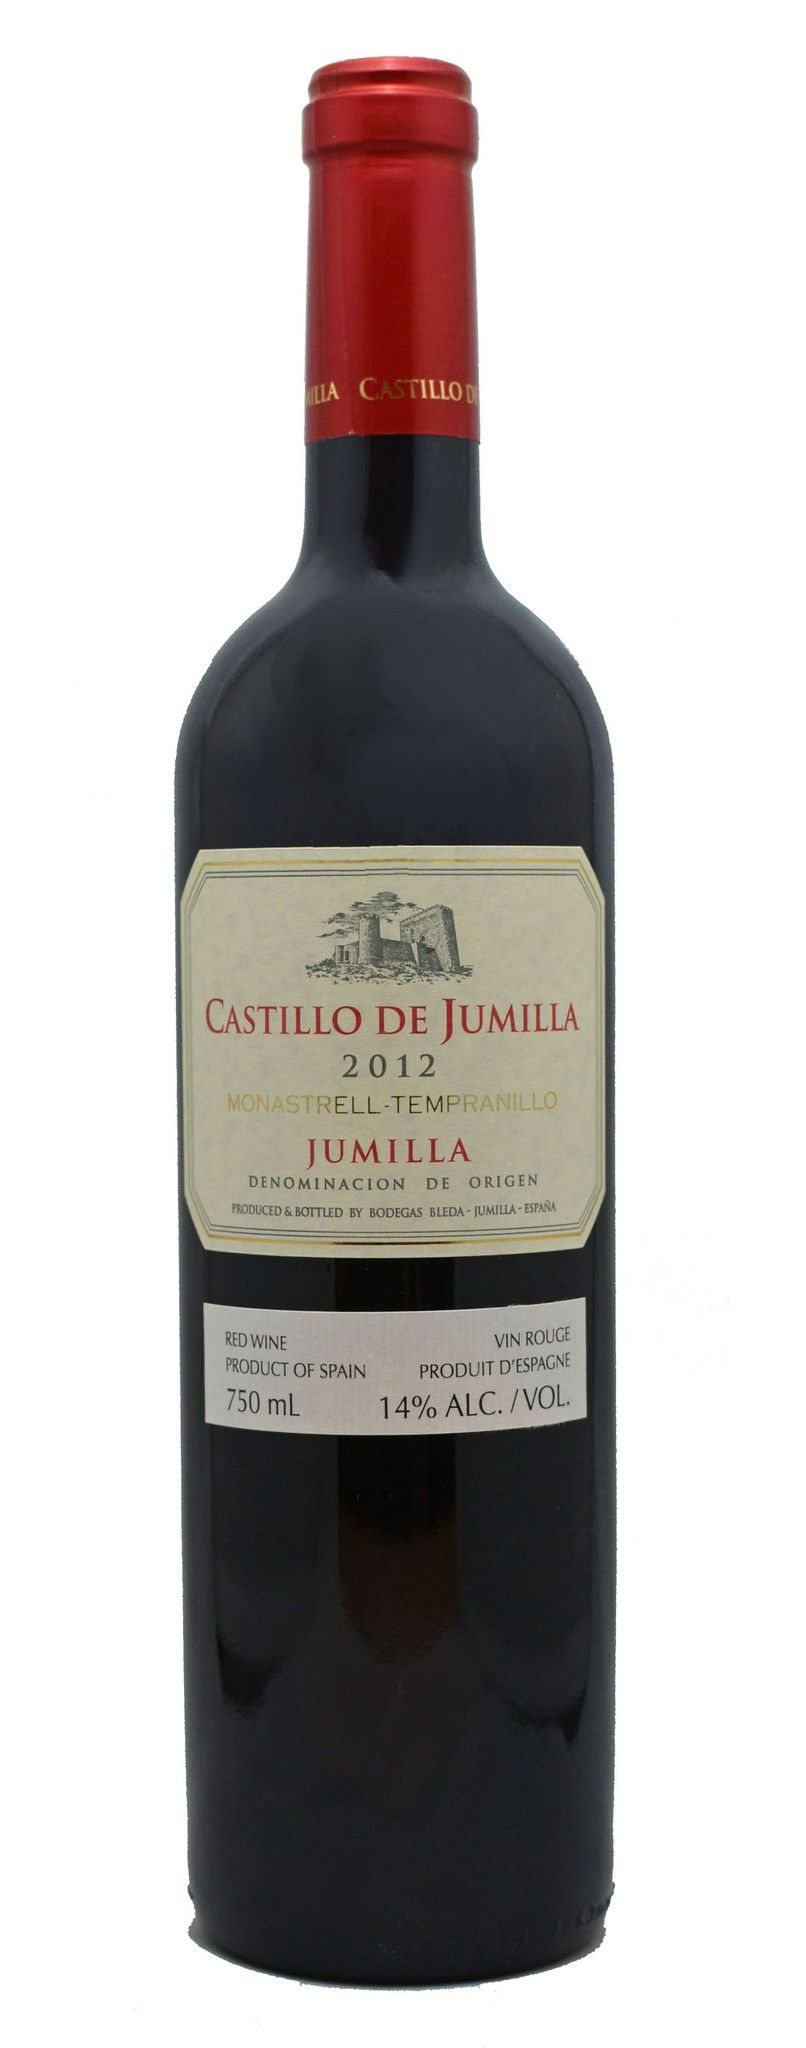 A staff favourite for home entertaining. Castillo de Jumilla, Monastrell-Tempranillo – Kenaston Wine Market